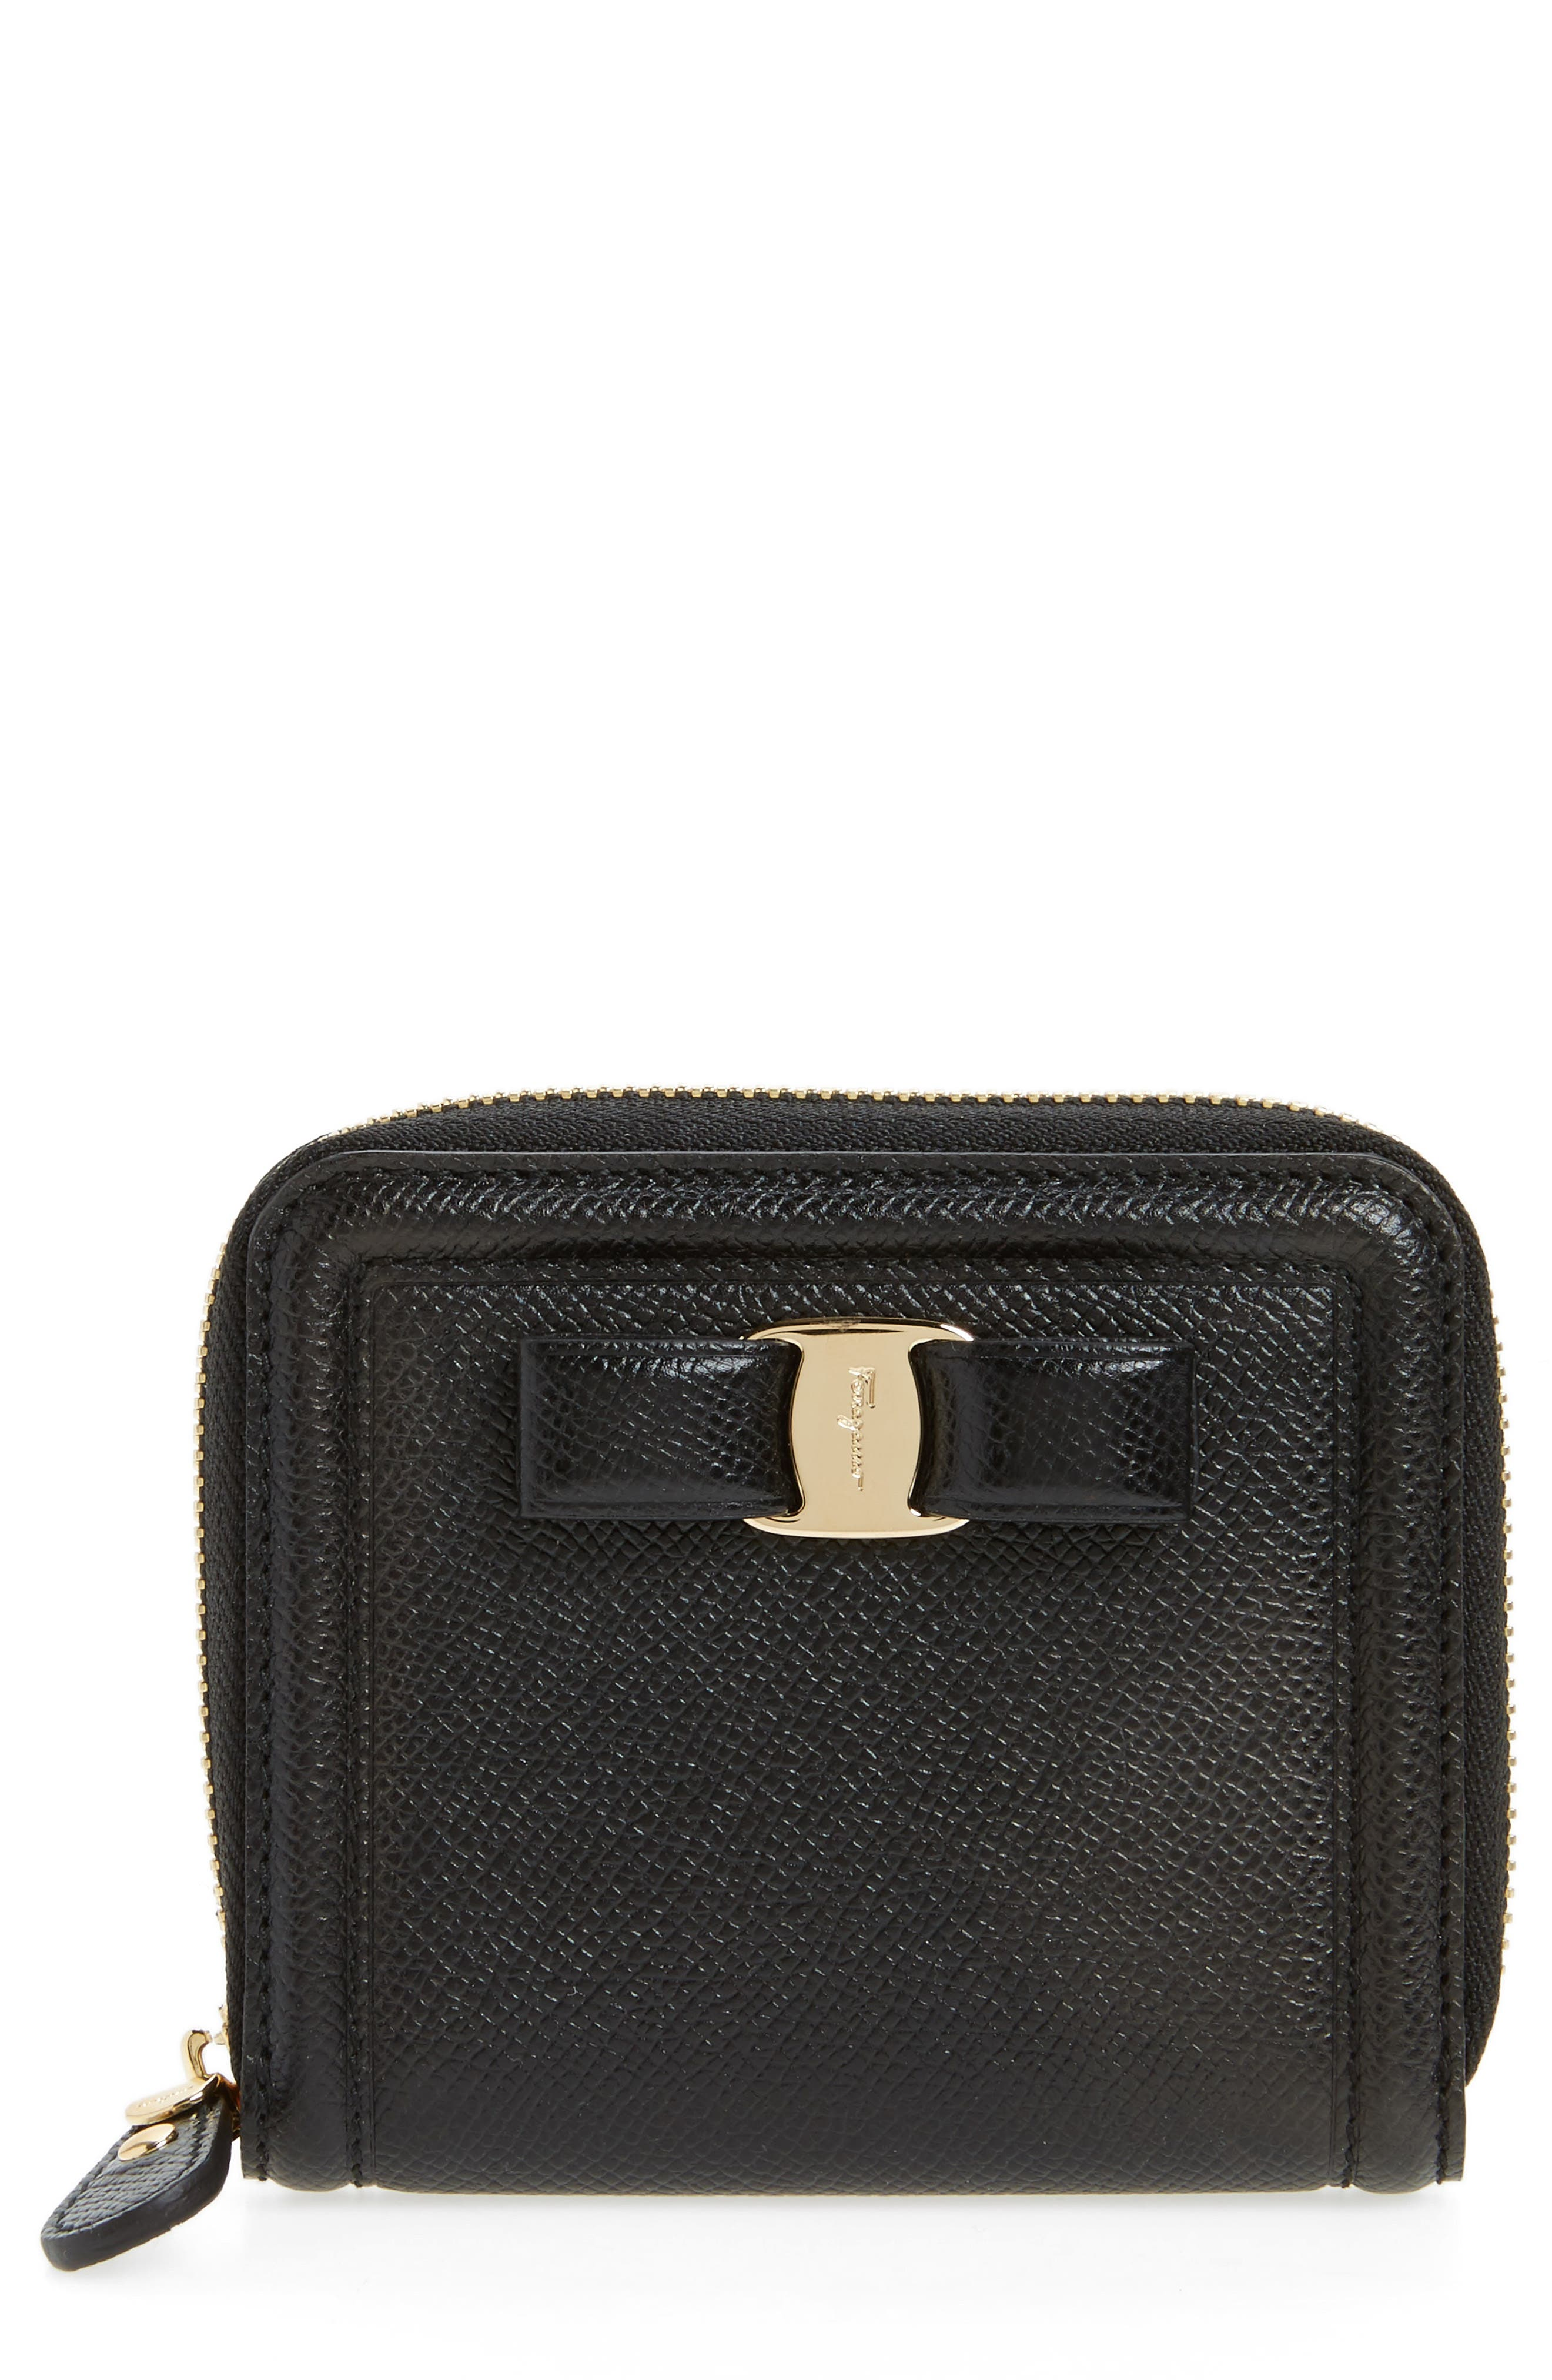 Vara Leather Zip Around French Wallet,                         Main,                         color, Nero